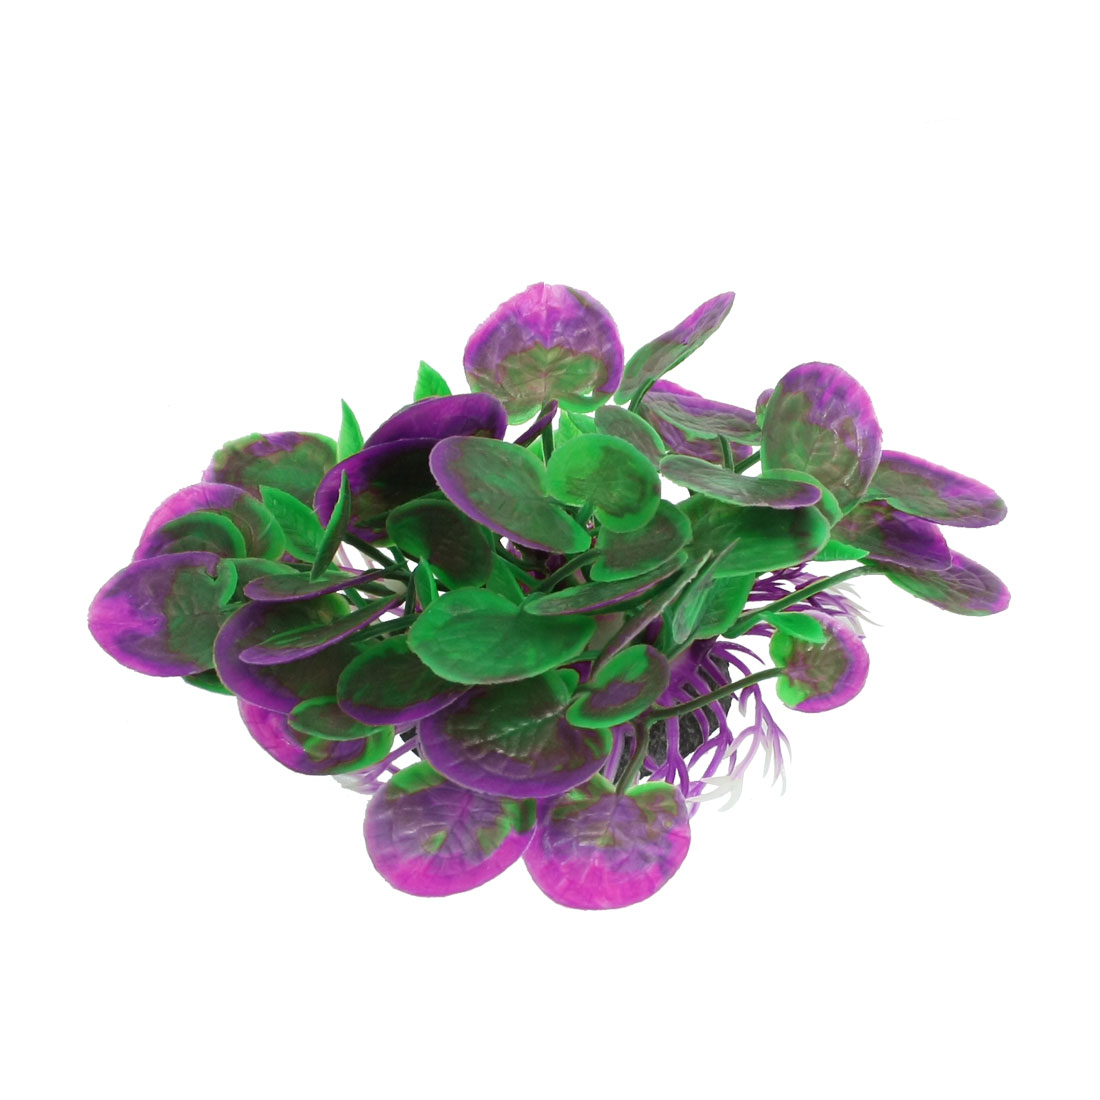 Aquarium Plastic Plant Aquascaping Fish Tank Ornament Green Purple